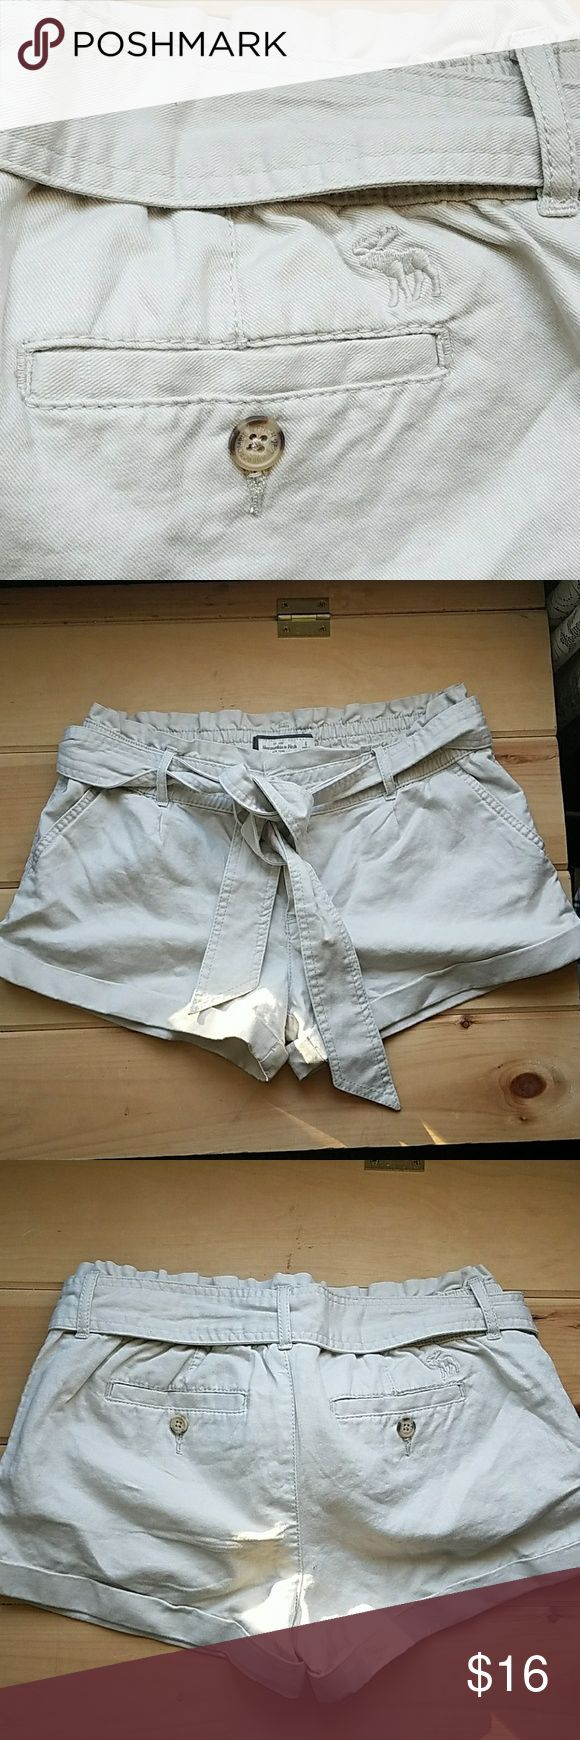 Abercrombie and Fitch shorts Folded cuffs. Removable cloth belt. Abercrombie & Fitch Shorts